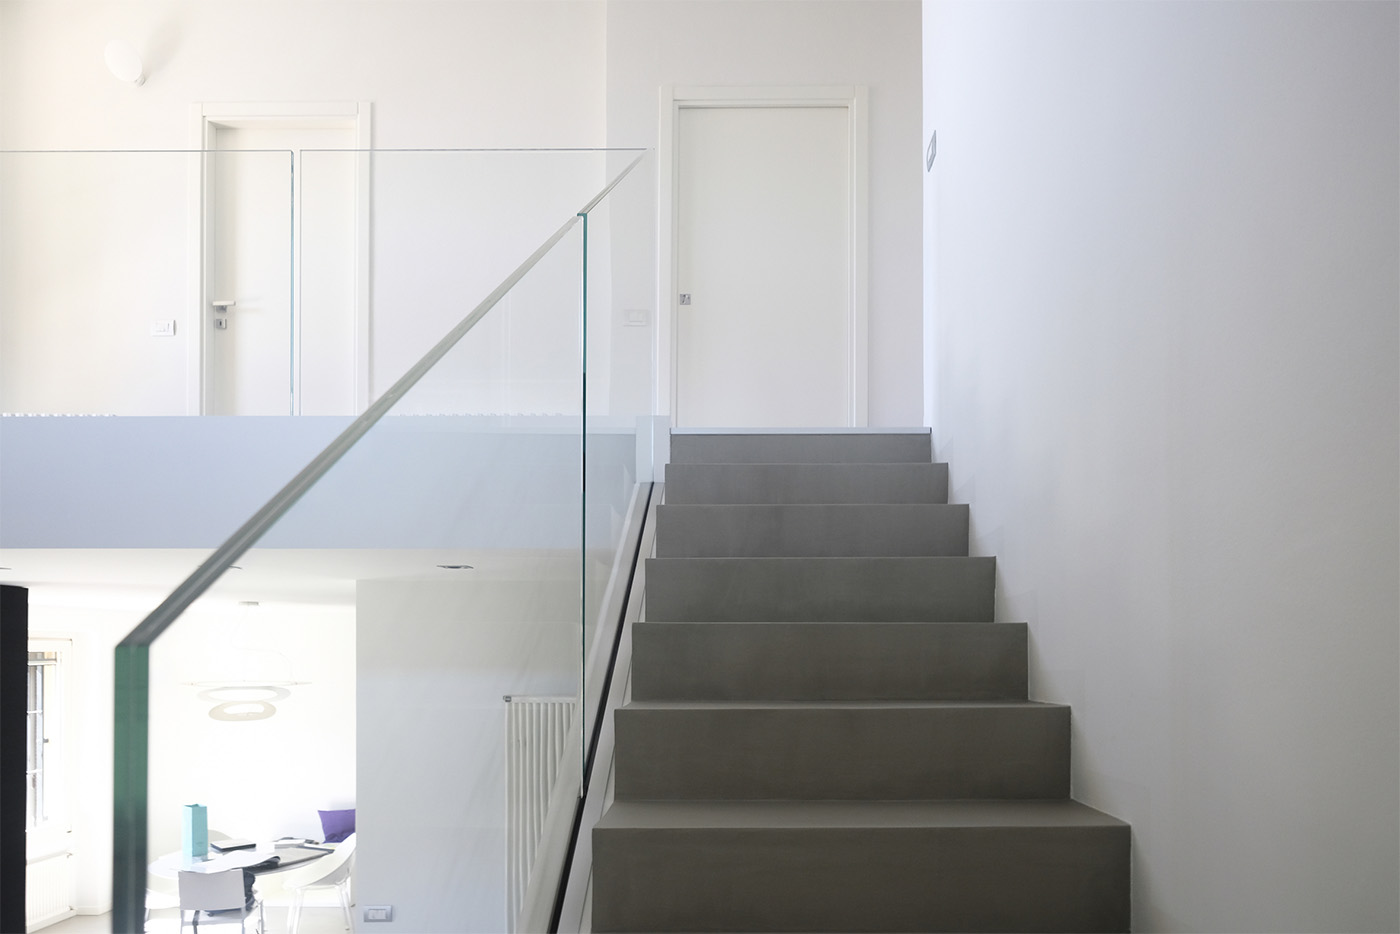 Internal staircase with Garda FS Aluvetro red glass handrail